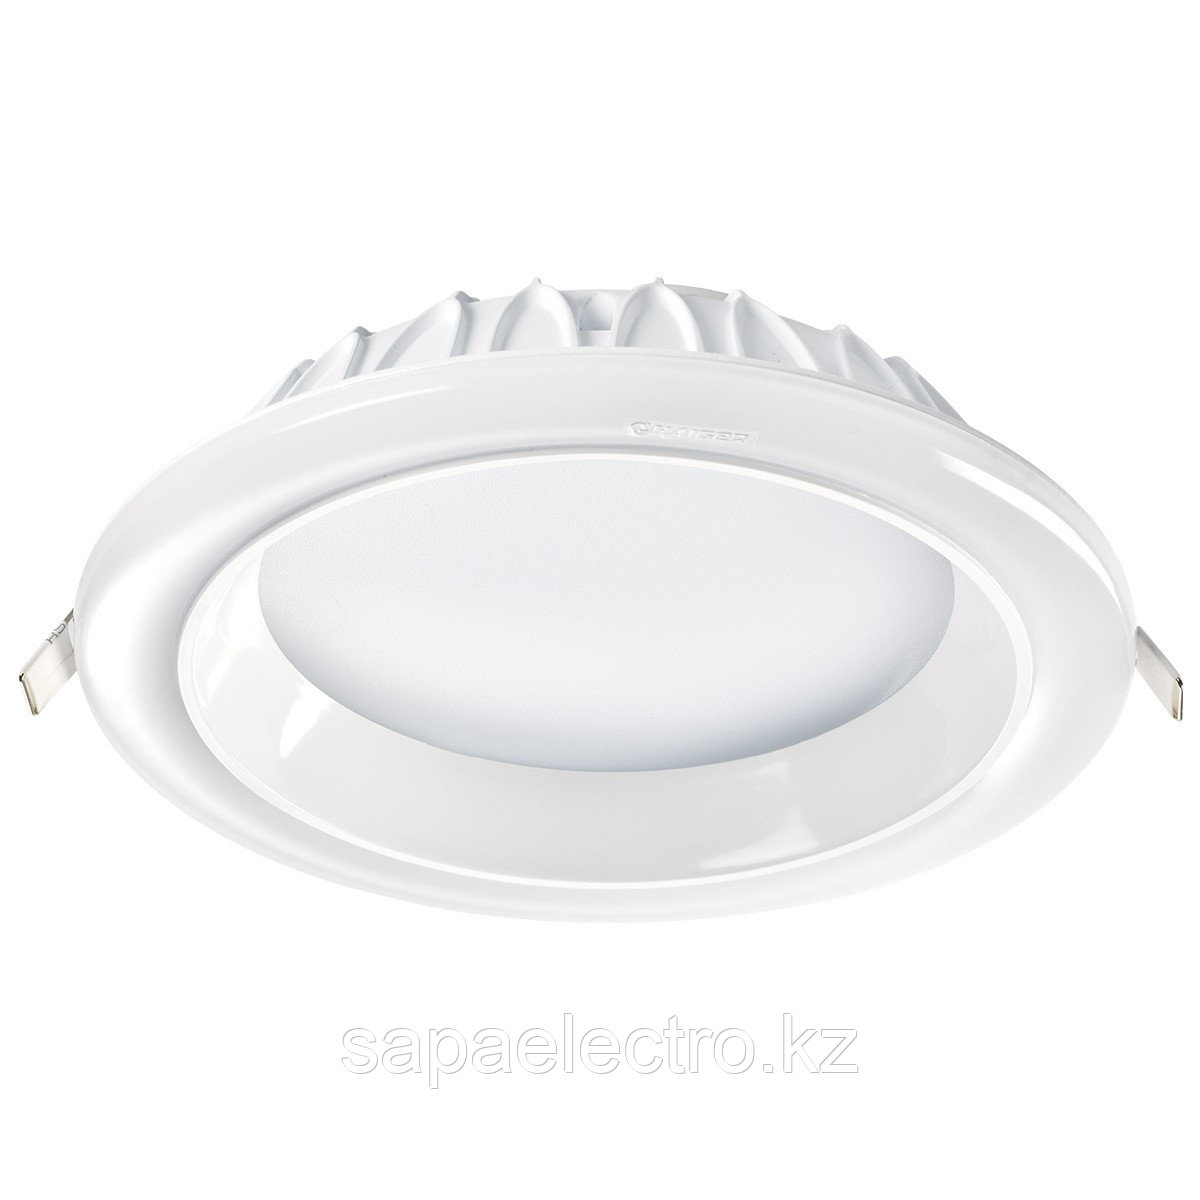 Свет-к DOWNLIGHT LED RD 30W 6000K WHITE (TS) 20шт